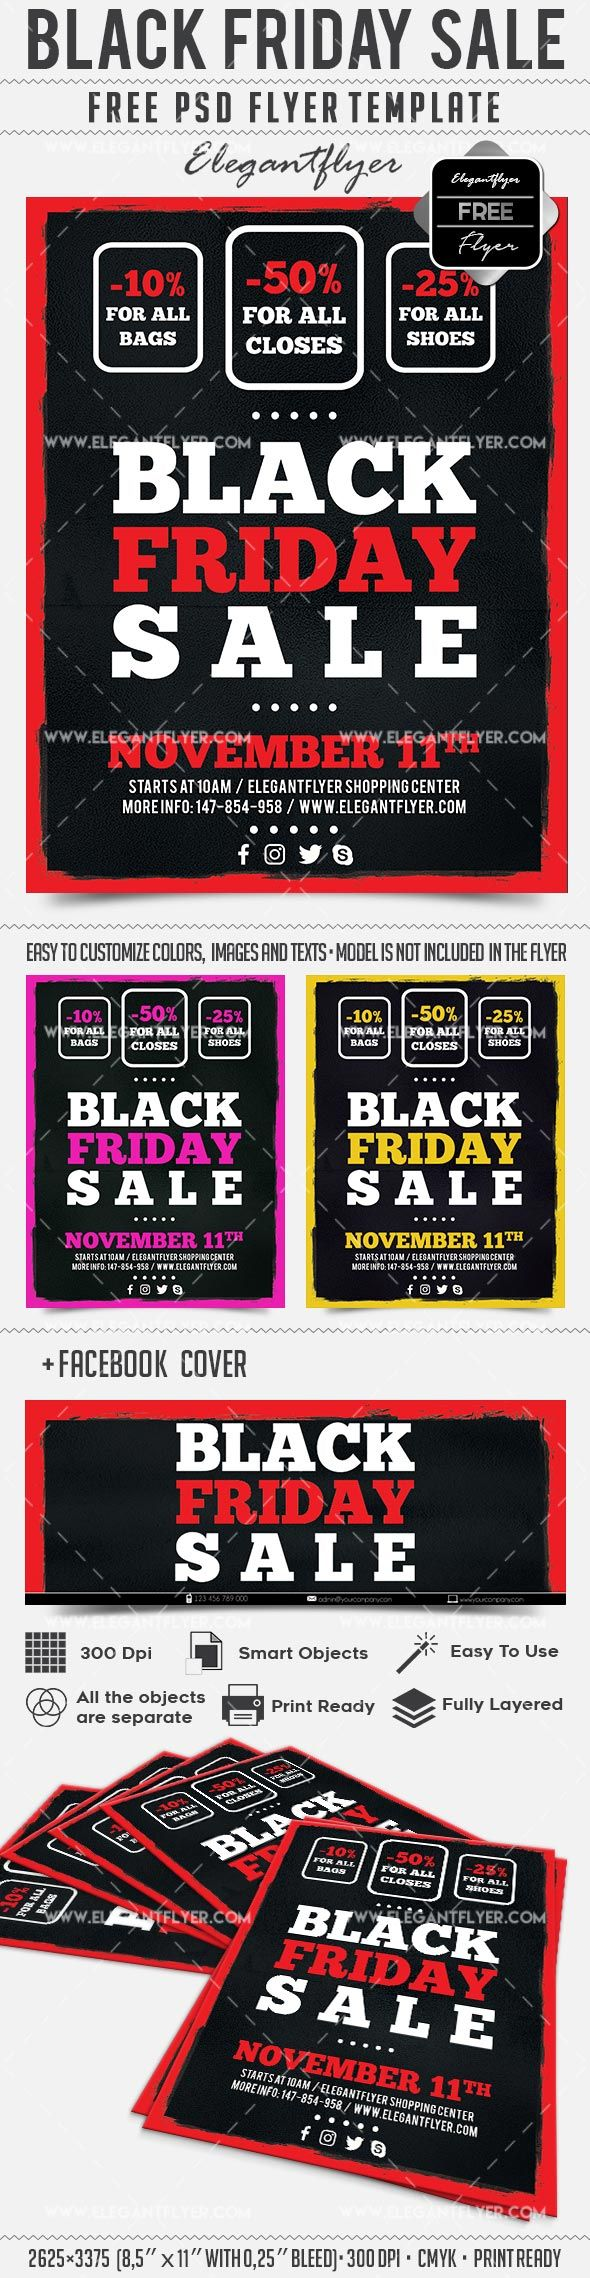 1000 images about psd flyer design 2016 mardi get this amazing template you can use all of our premium flyer templates psd event flyer templates many business brochures business cards and